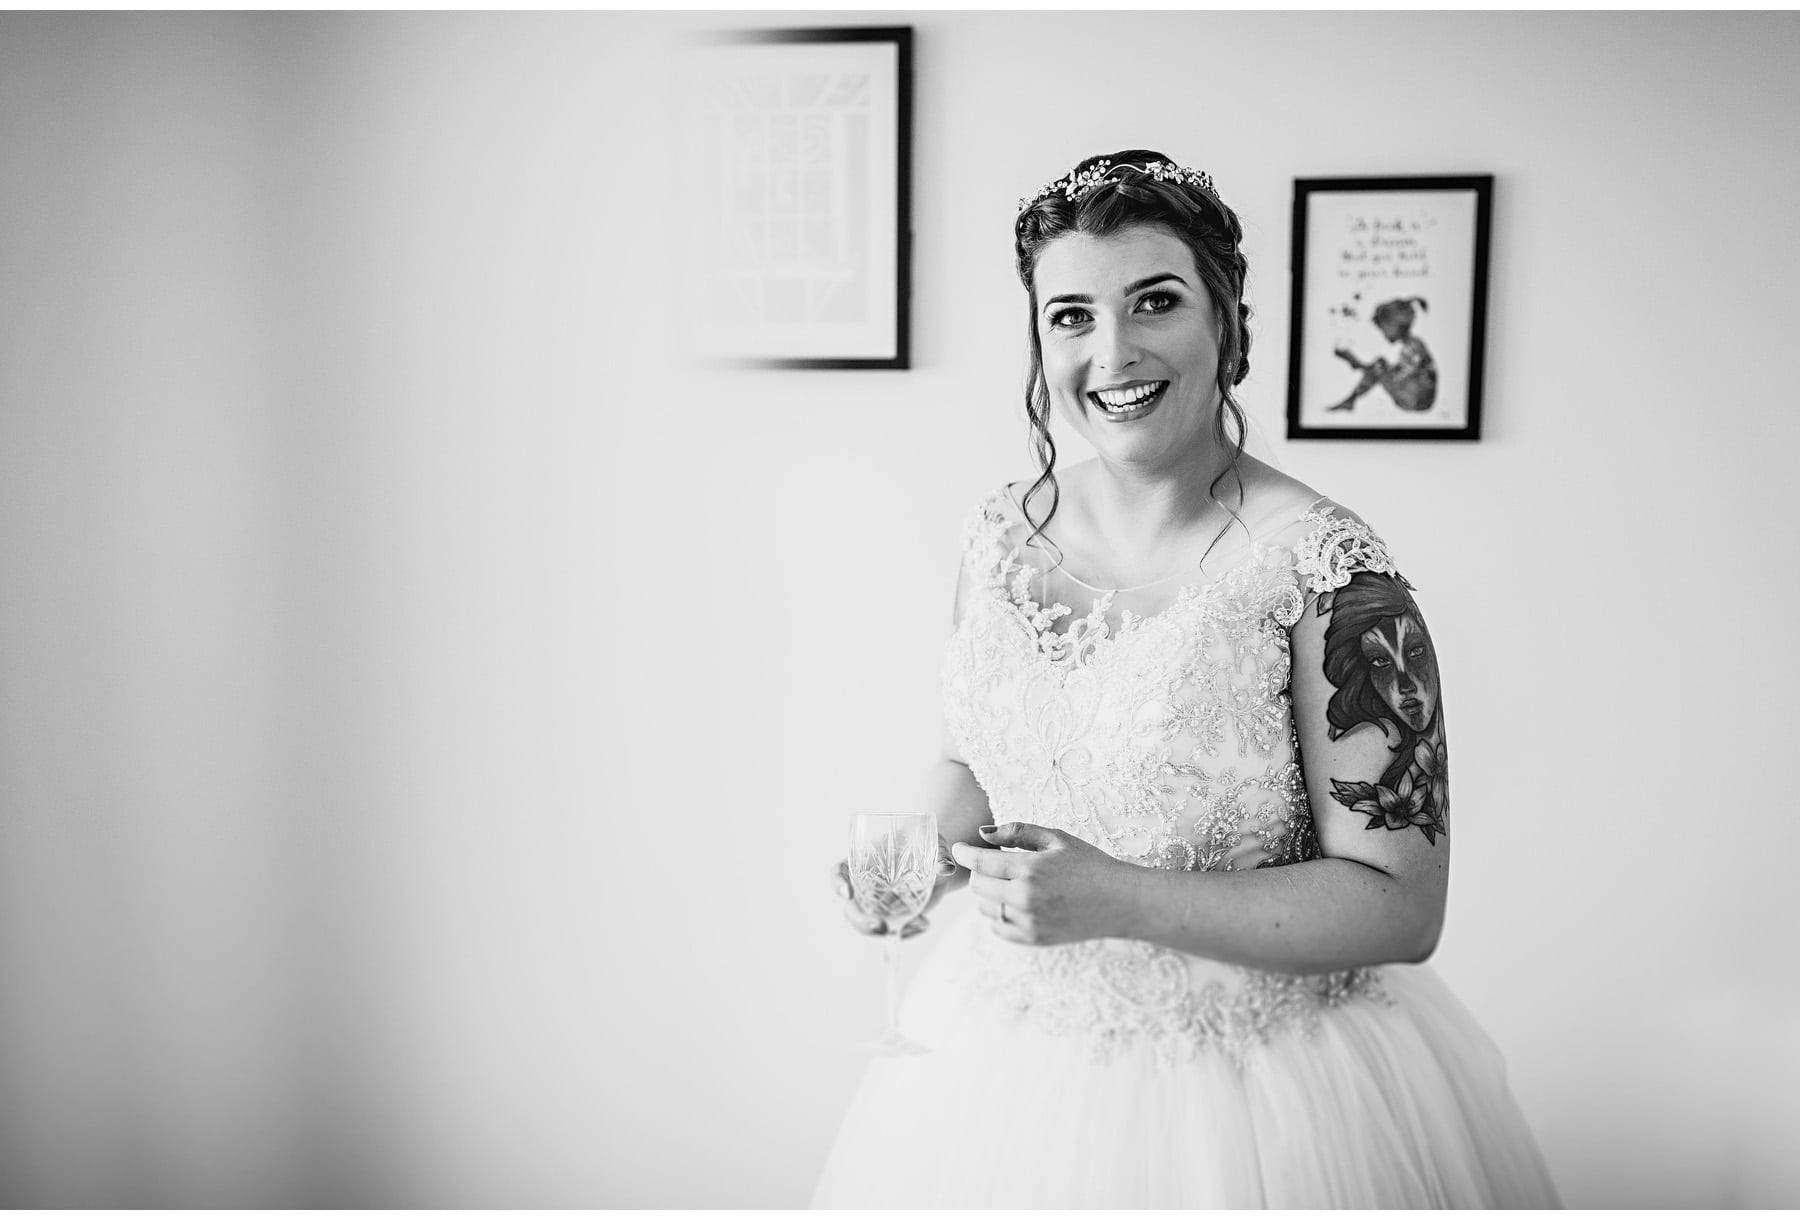 the bride in black and white looking happy